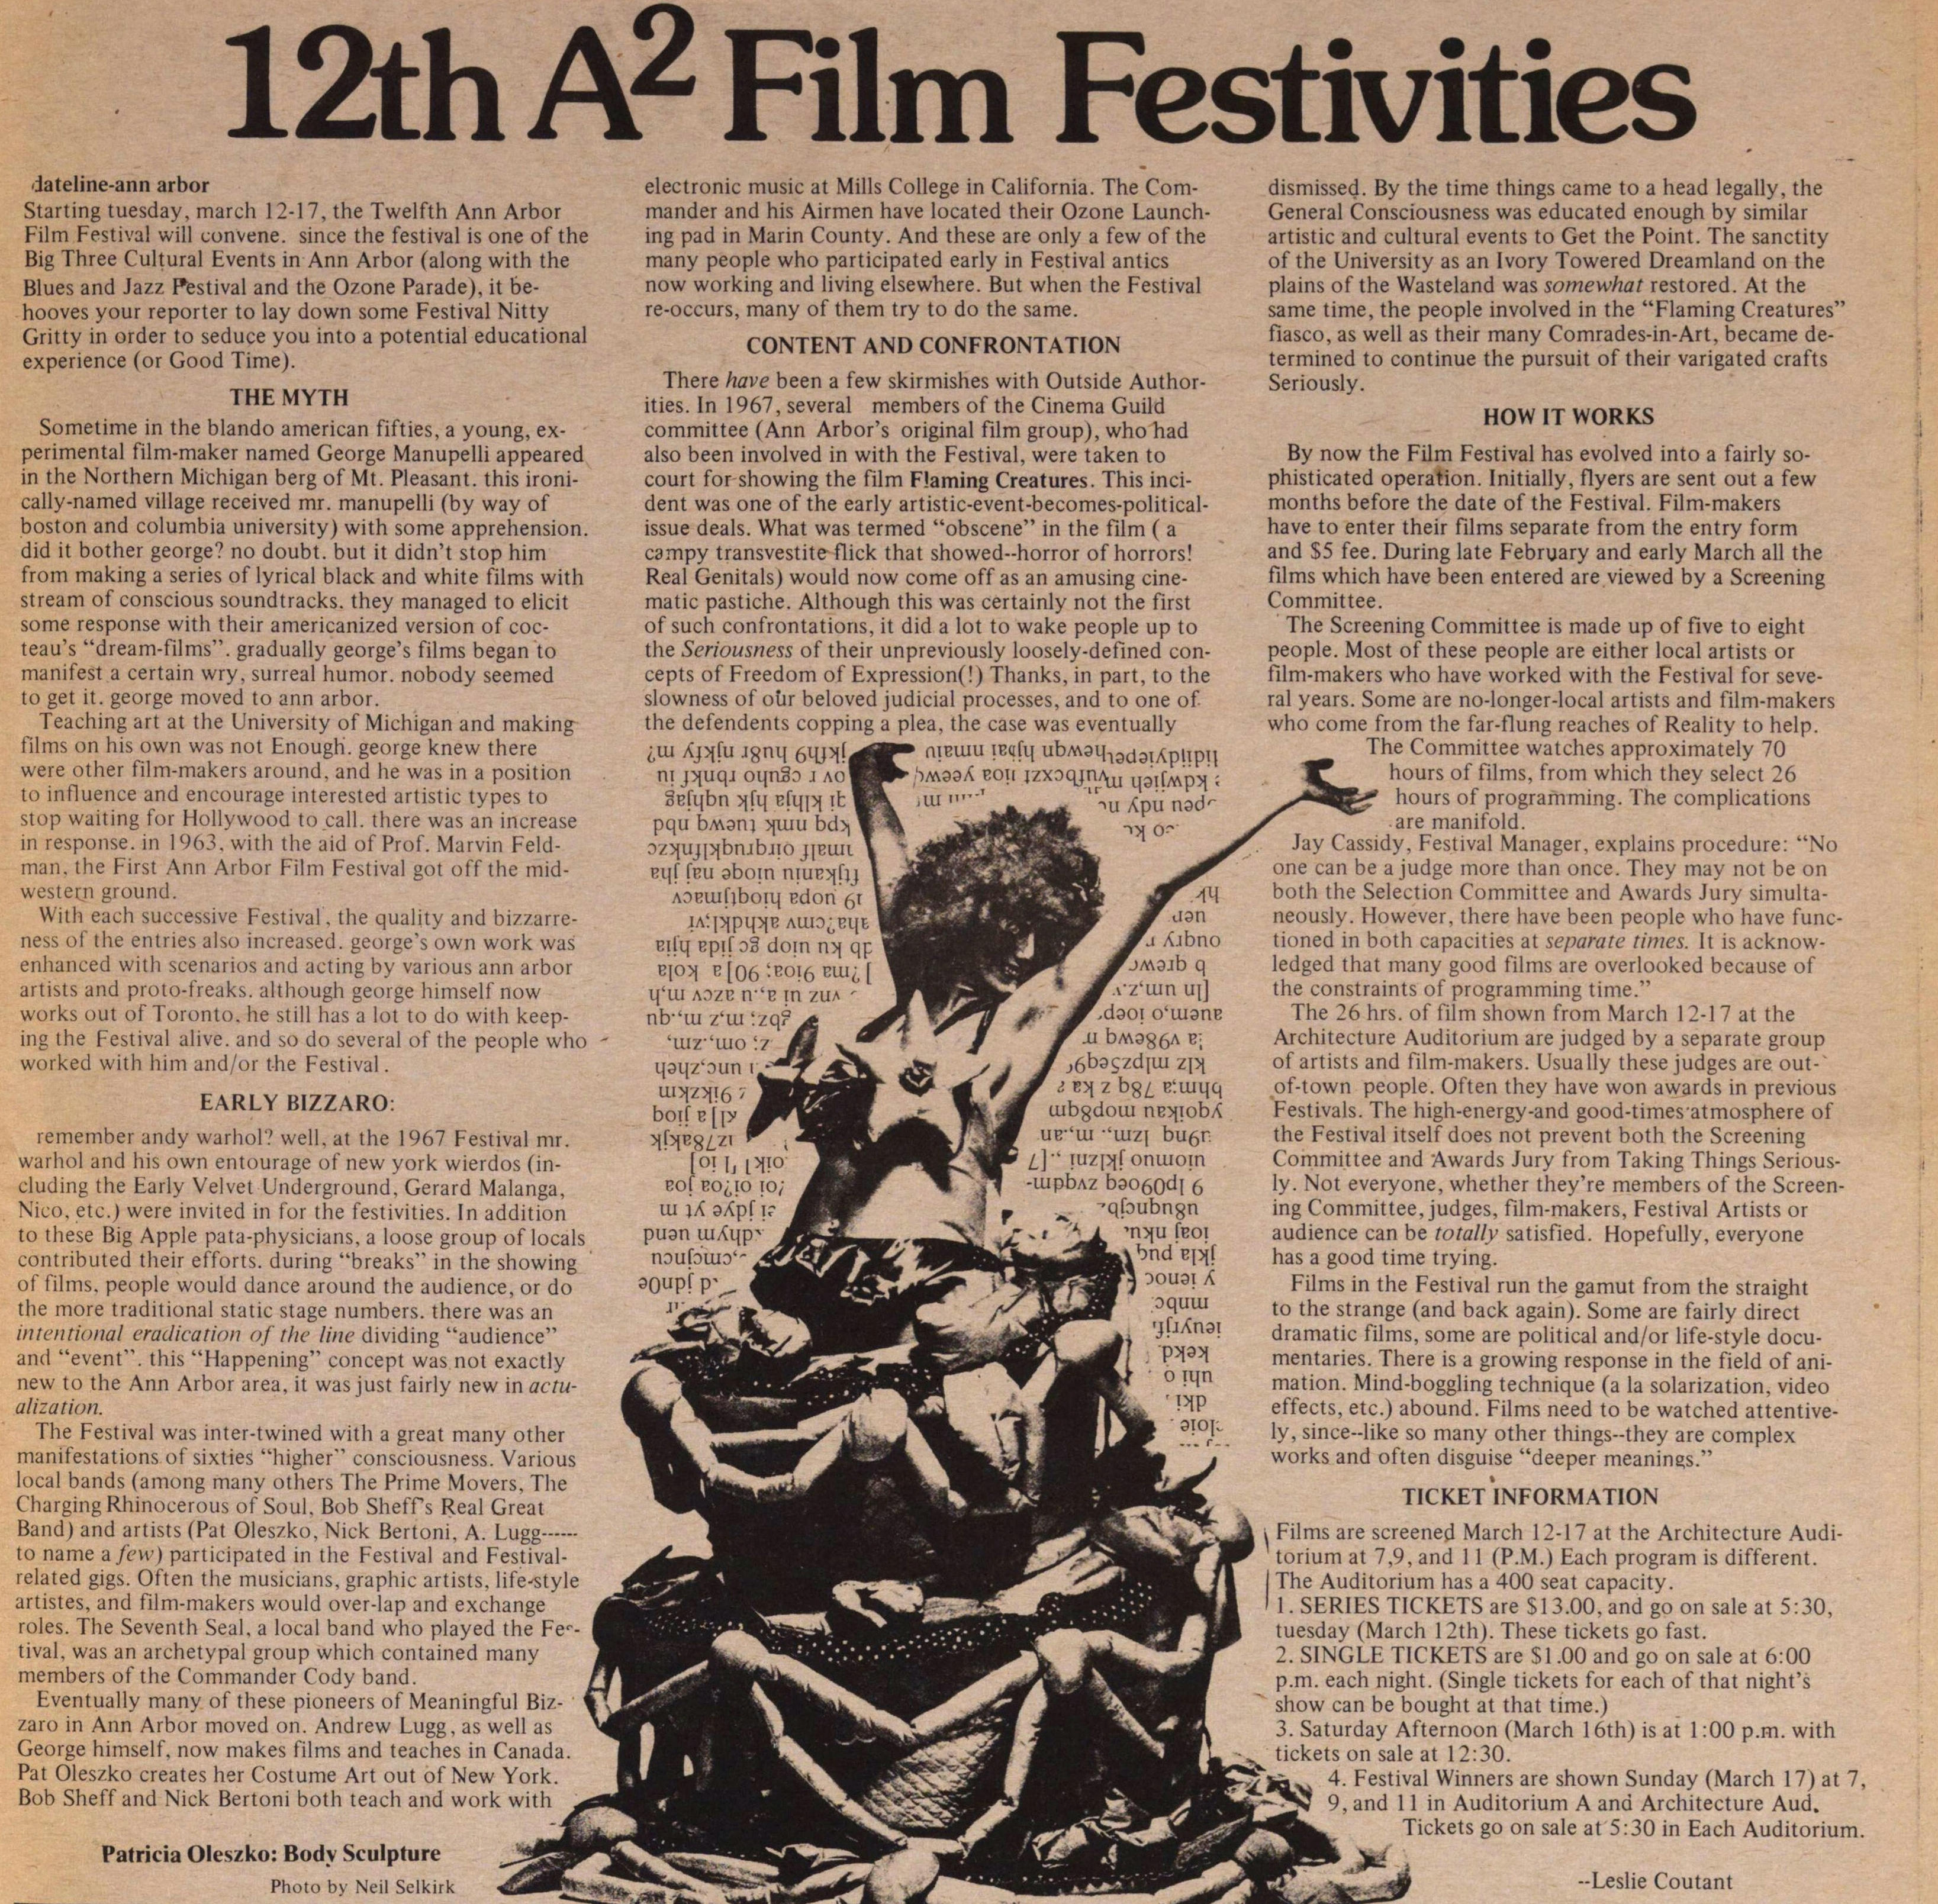 12th A2 Film Festivities image